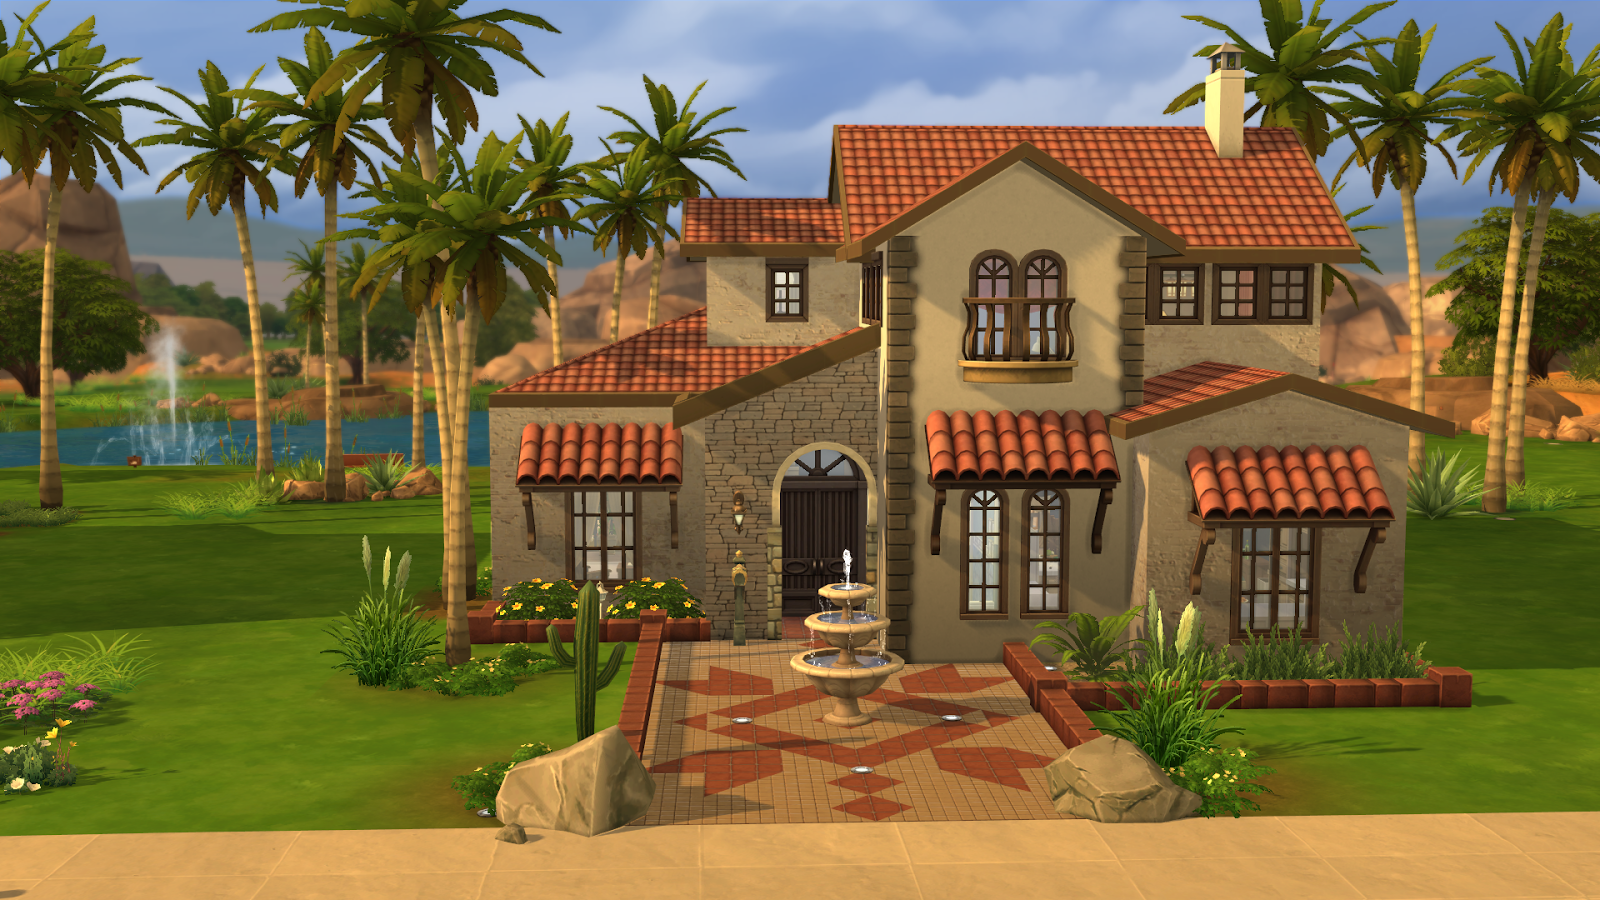 My sims 4 blog villa california by ruth kay for Villas california